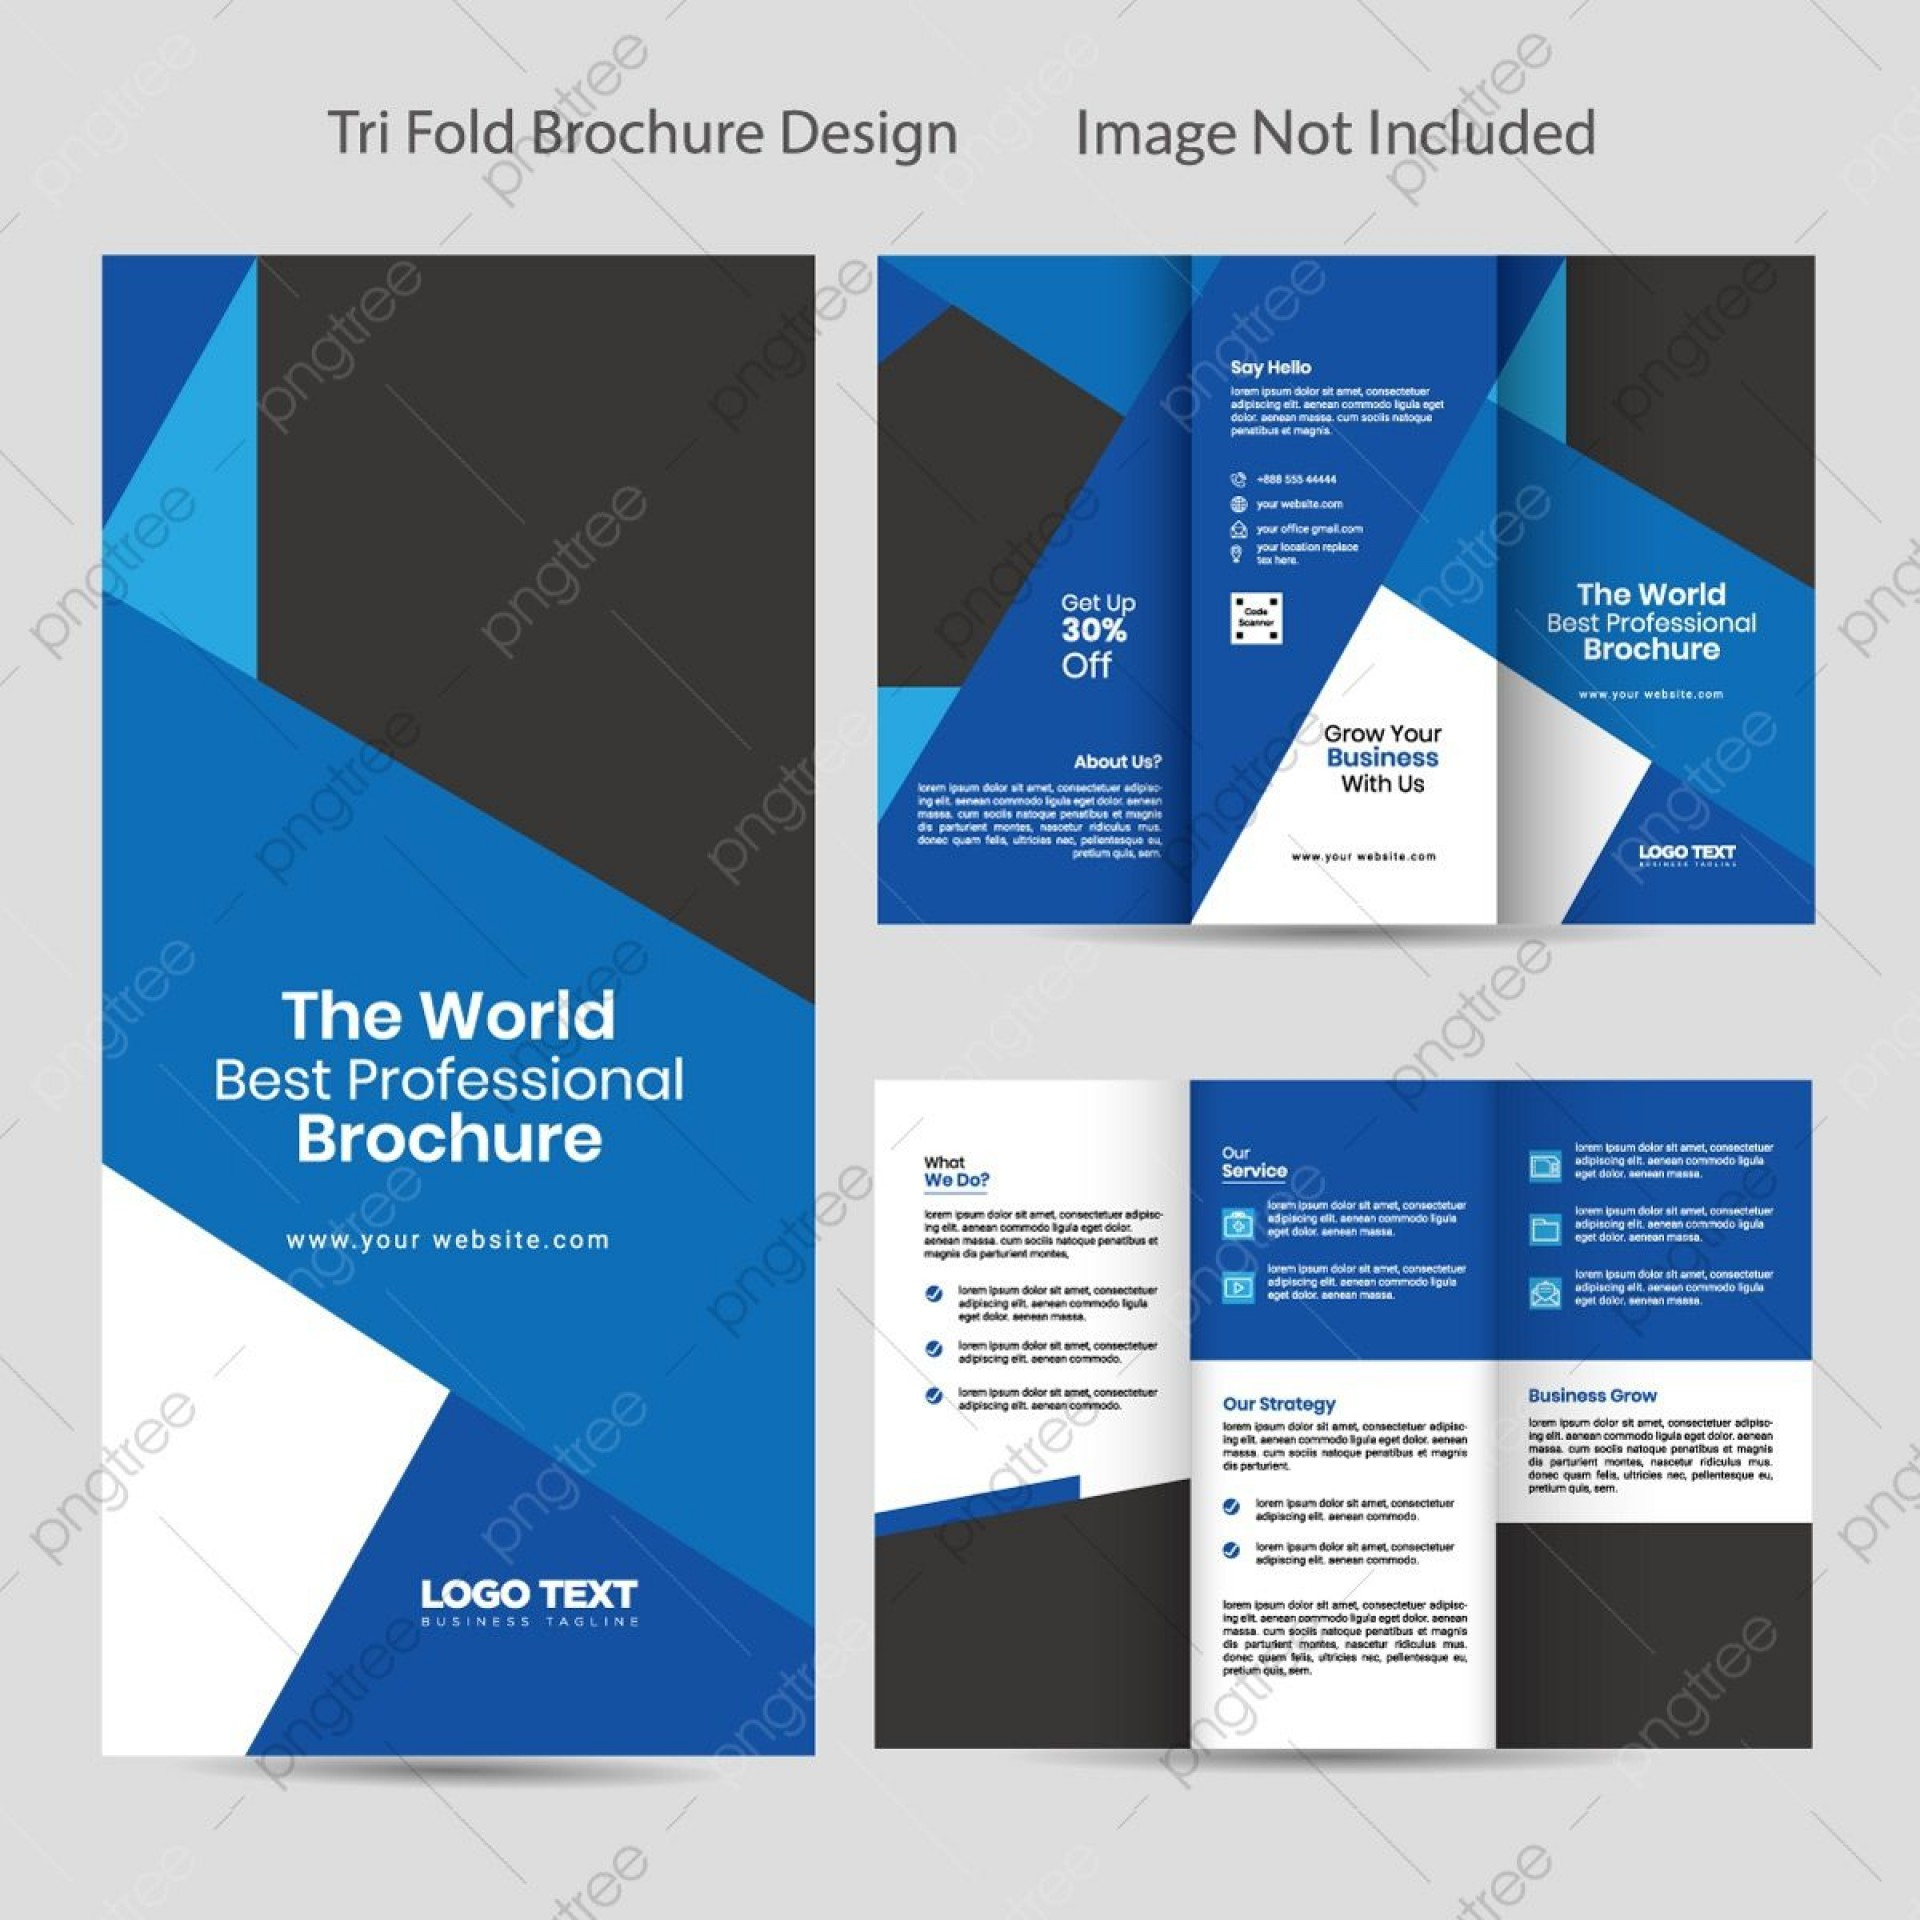 008 Impressive Template For Trifold Brochure High Definition  Tri Fold Indesign A4 Free In Word Download1920